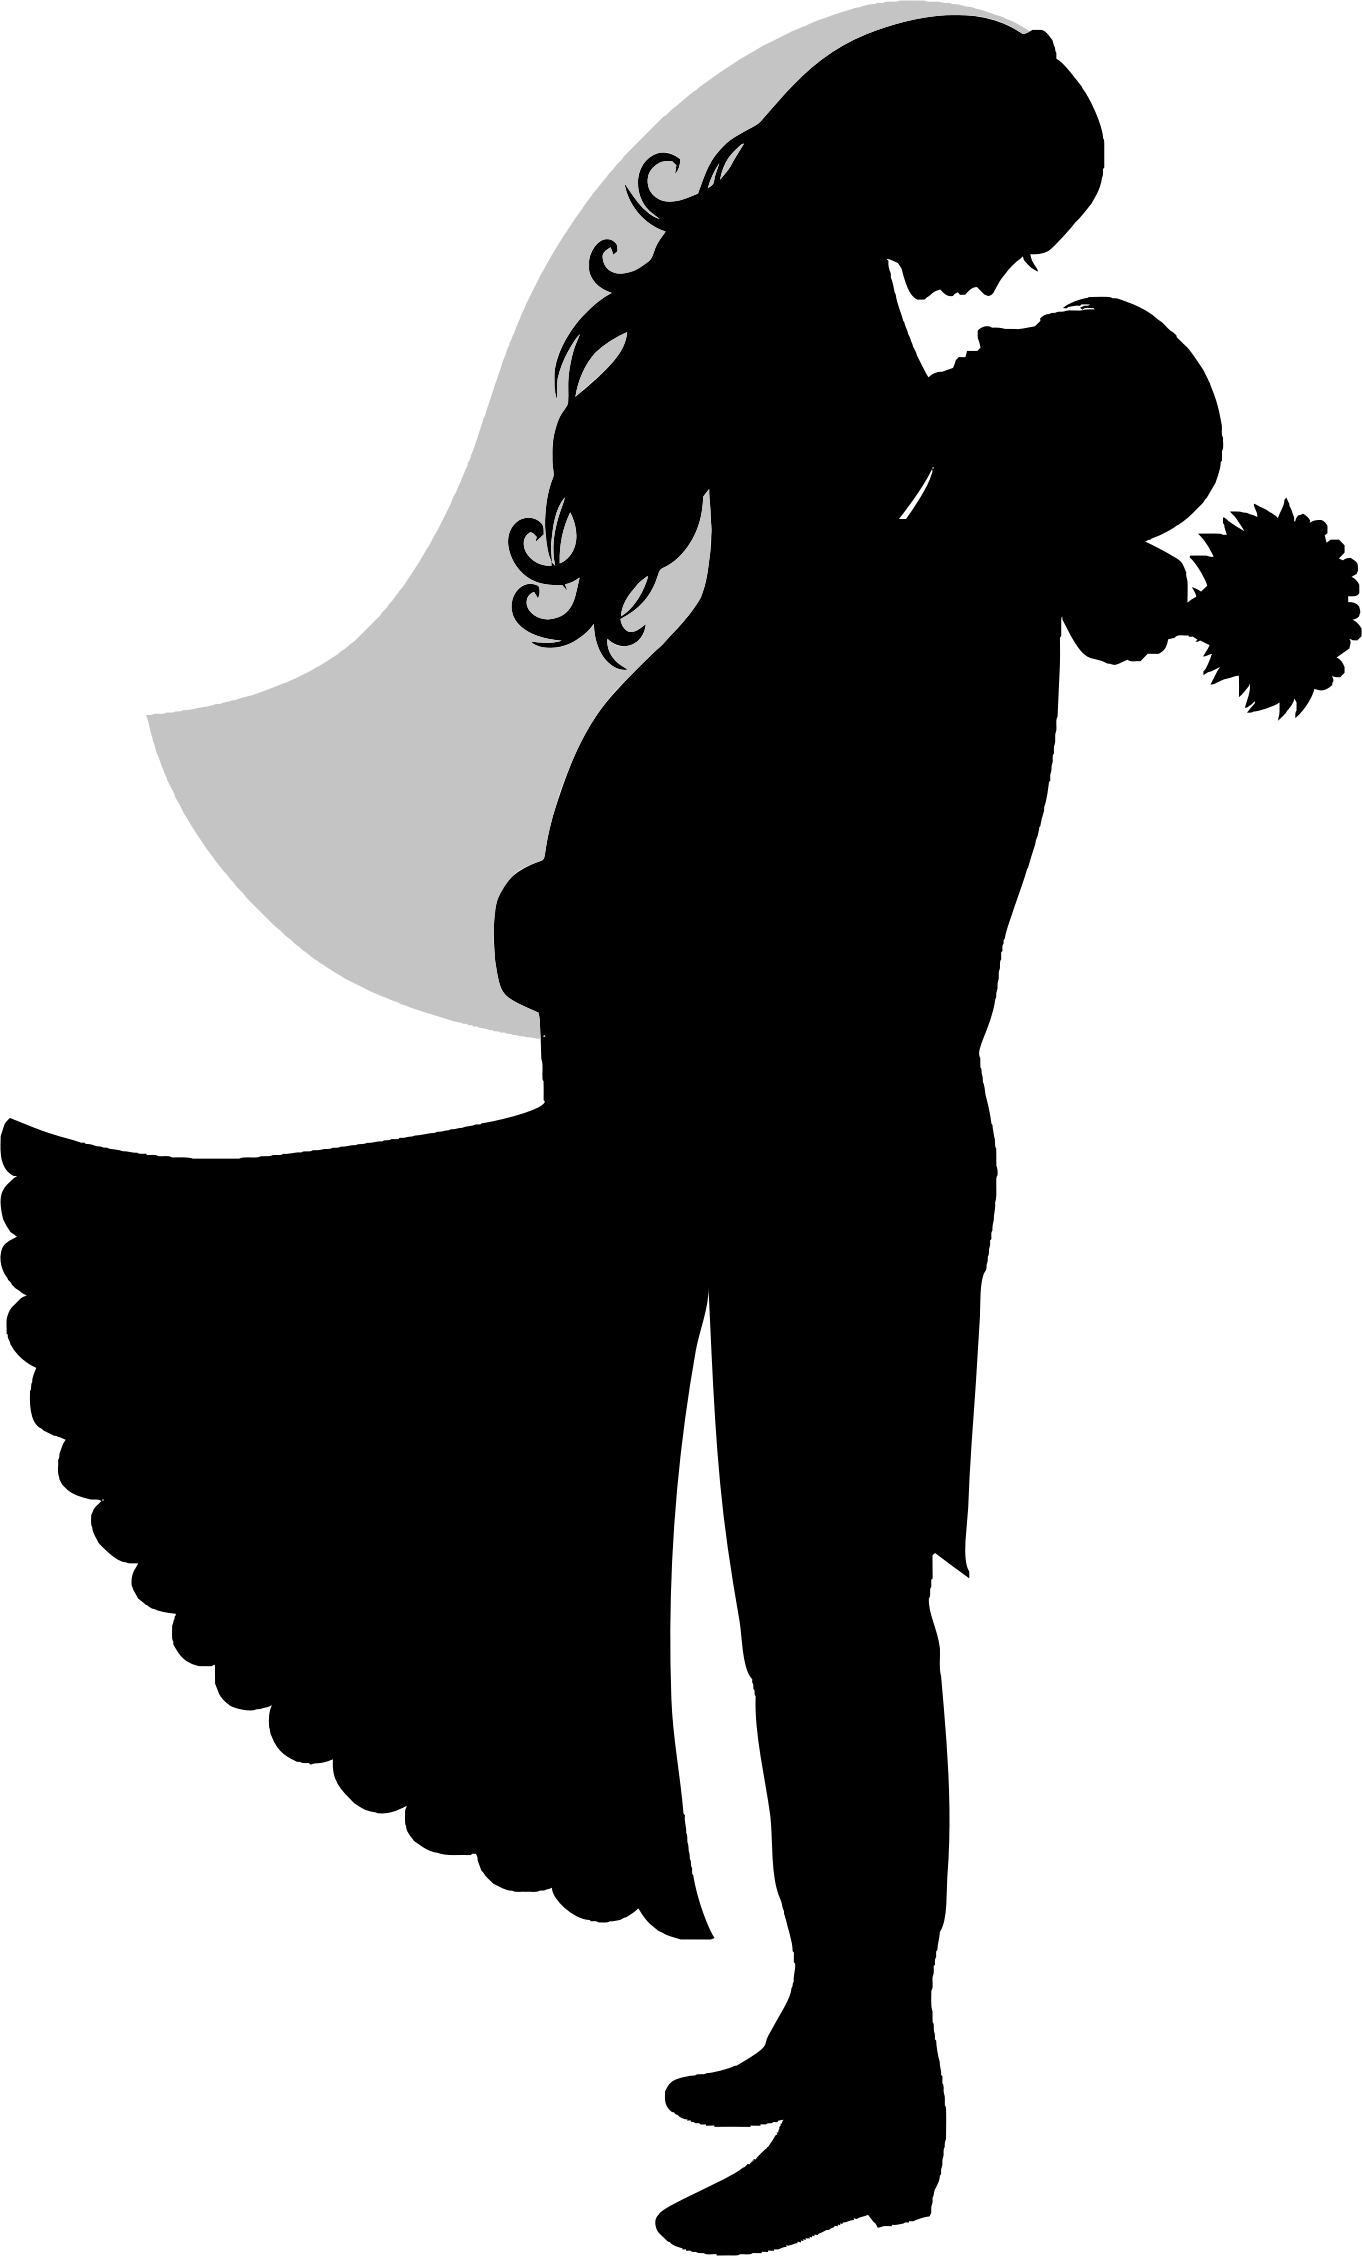 Bride and groom silhouette free clipart graphic Unique Bride And Groom Silhouette Clip Art Photos » Free Vector Art ... graphic